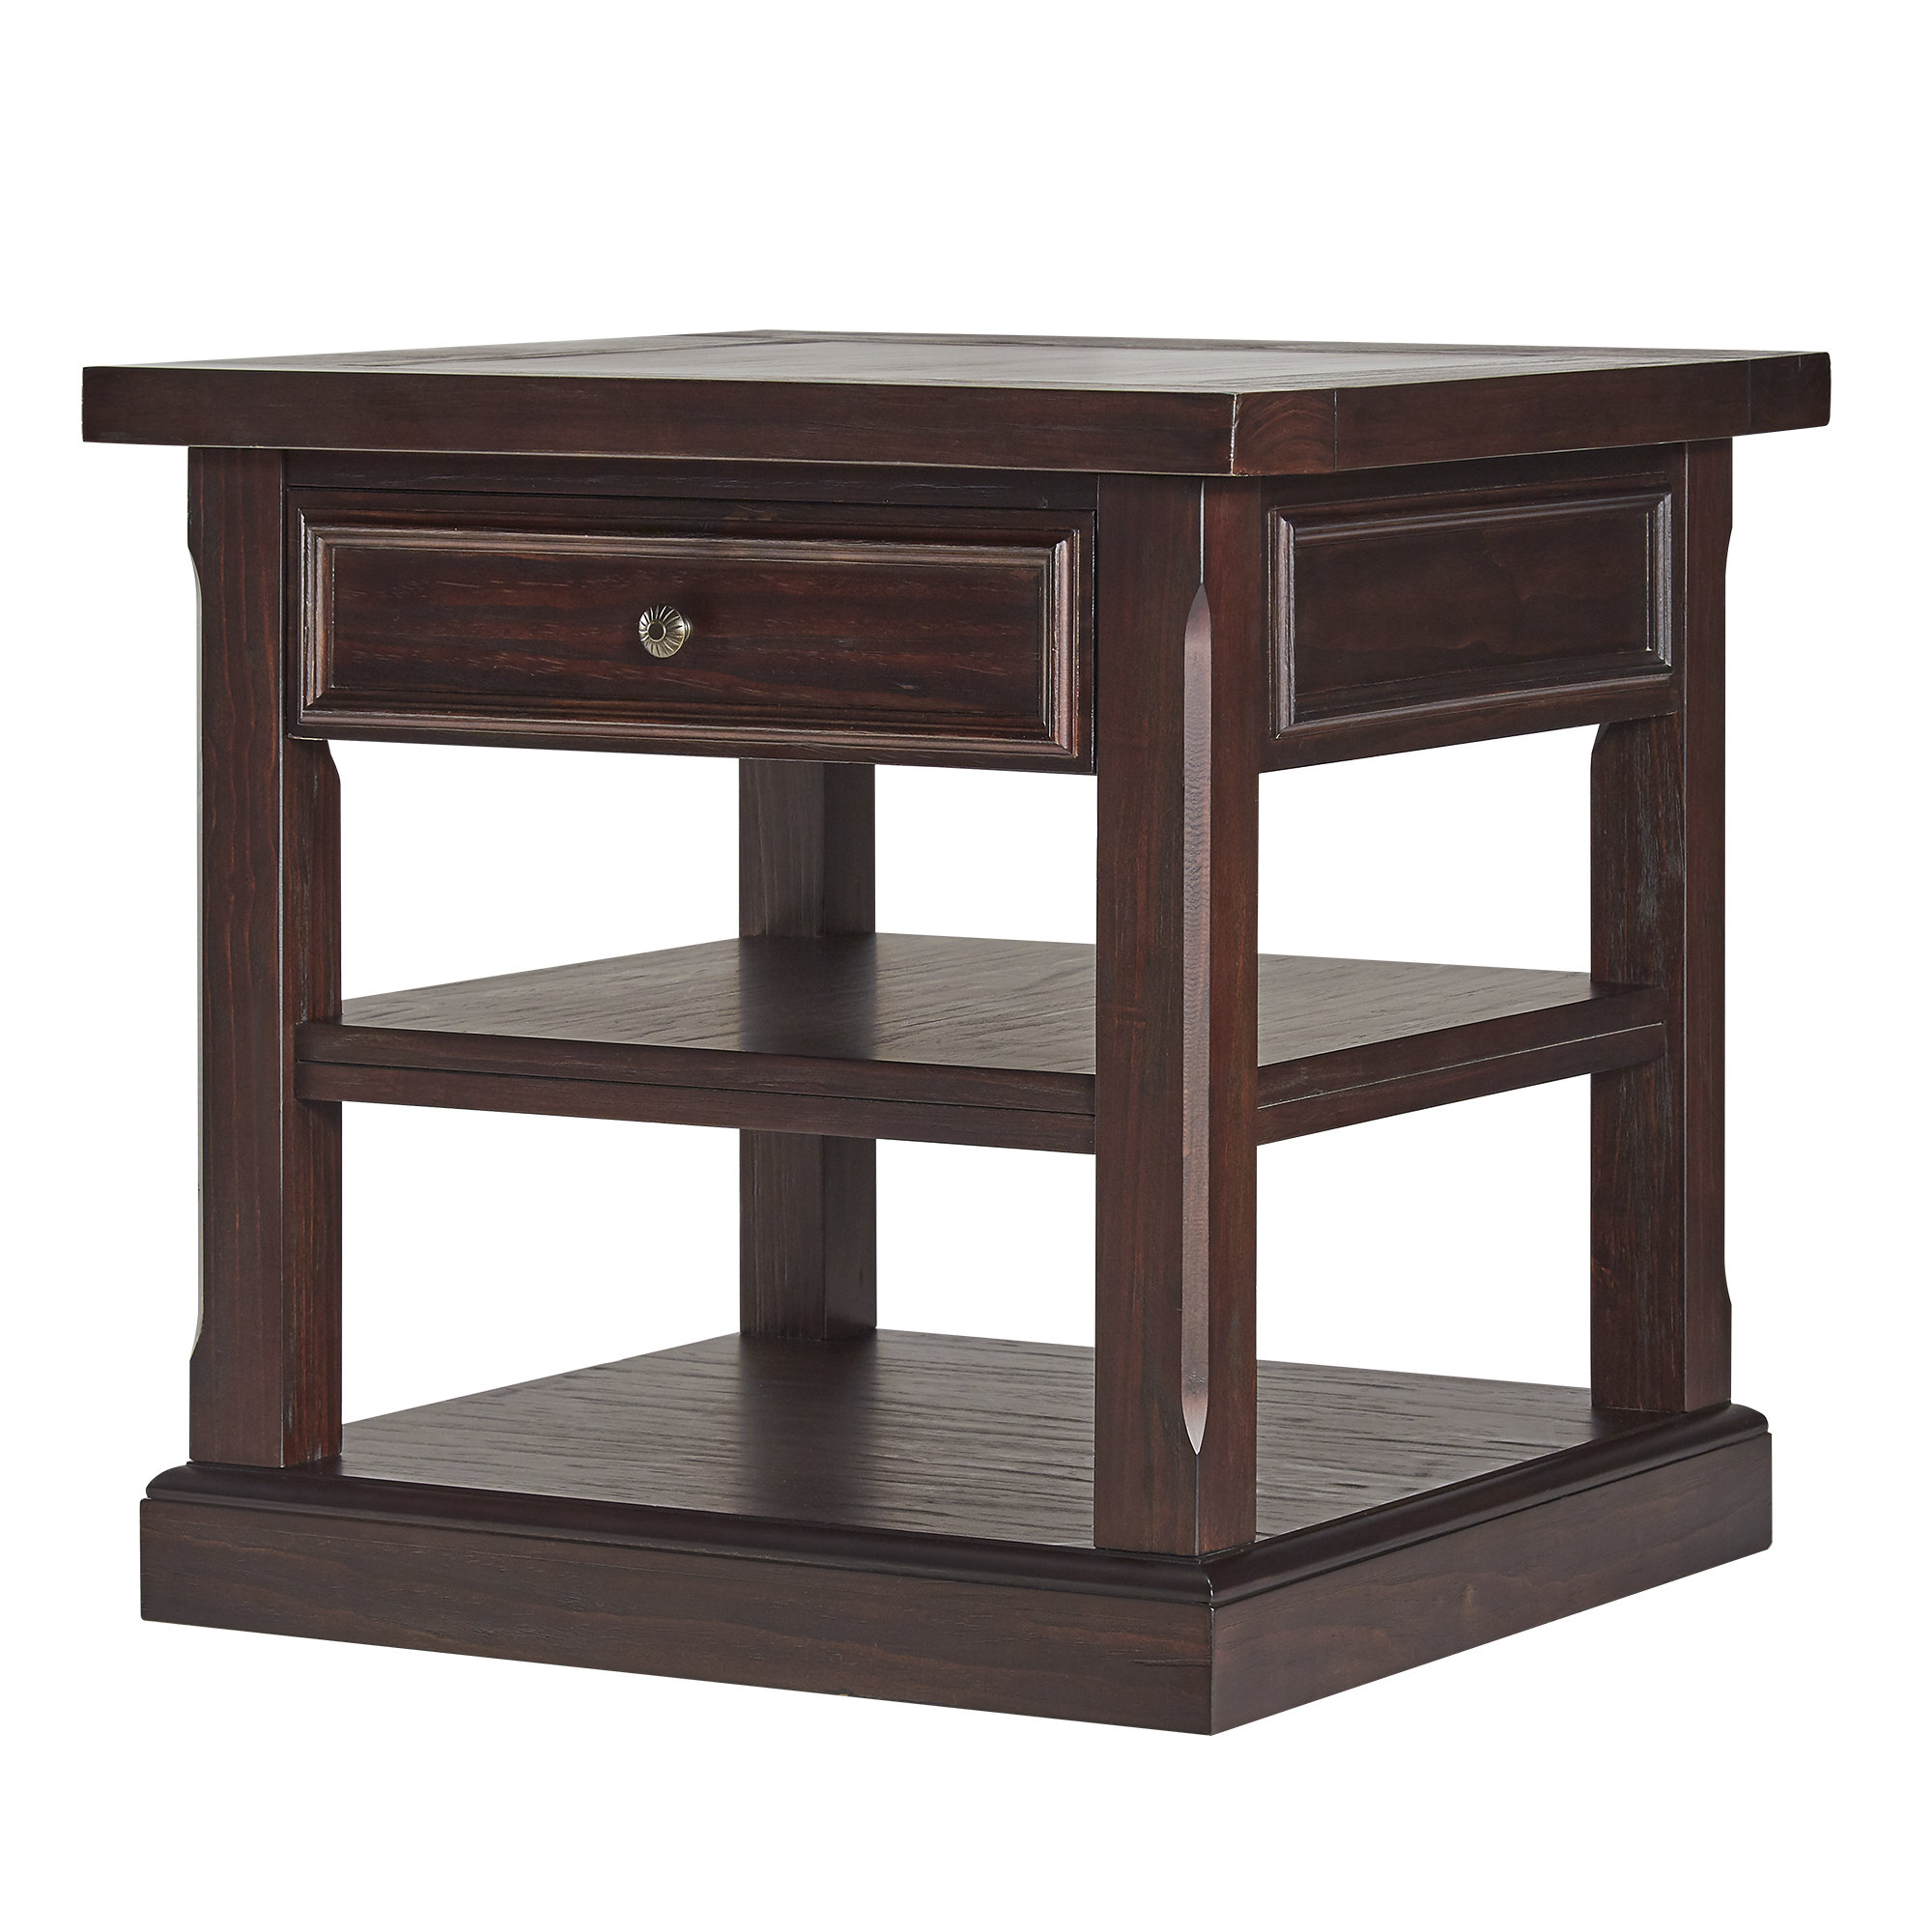 brownsboro end table joss main roxborough patchen accent coffee designs teal bedroom chair bedding and curtain sets desk custom upholstered chairs front door entry tables winsome